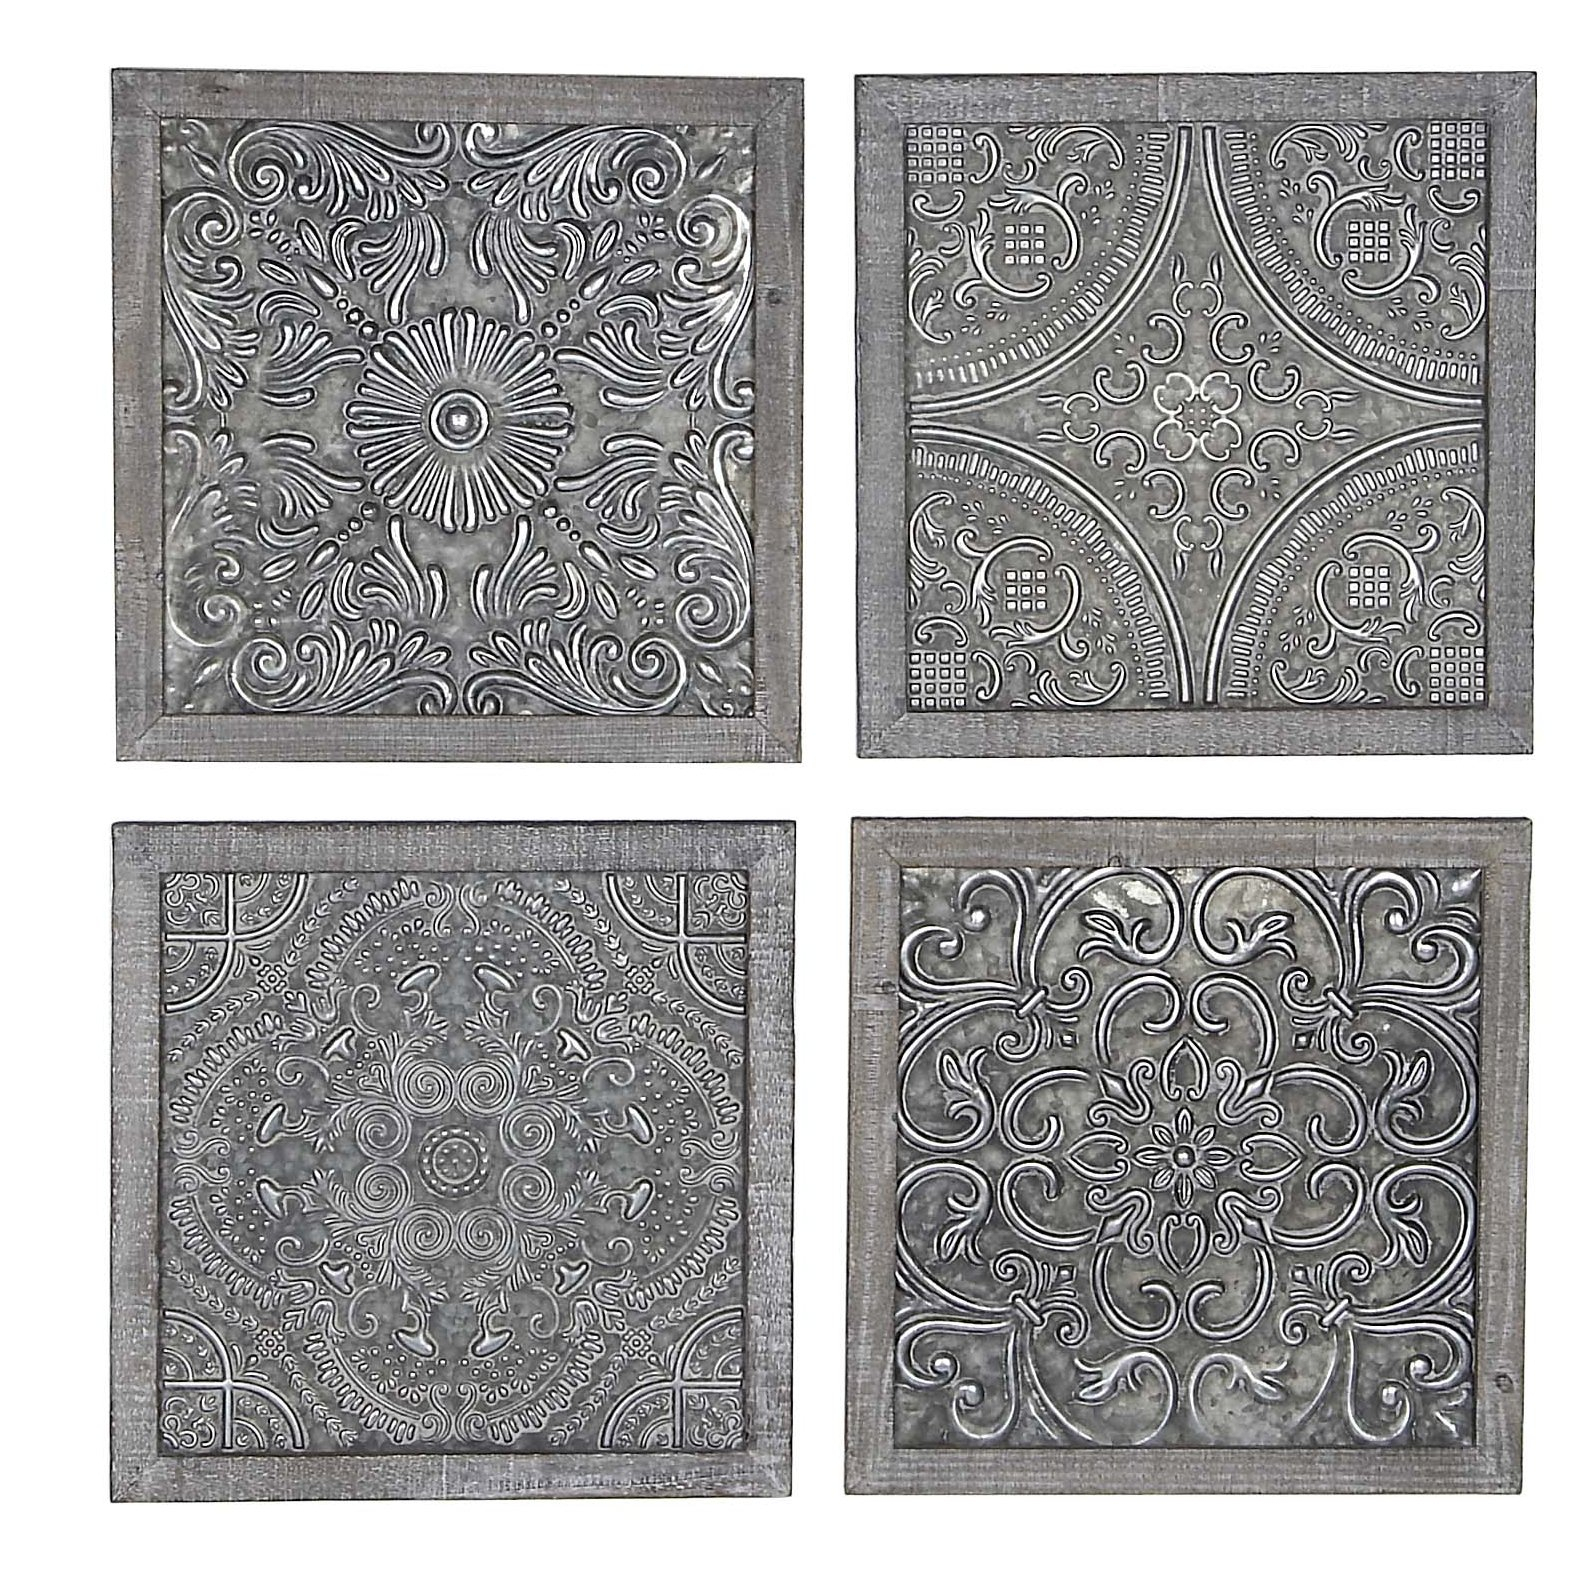 4 Piece Wall Decor Set Throughout 4 Piece Wall Decor Sets (View 5 of 30)